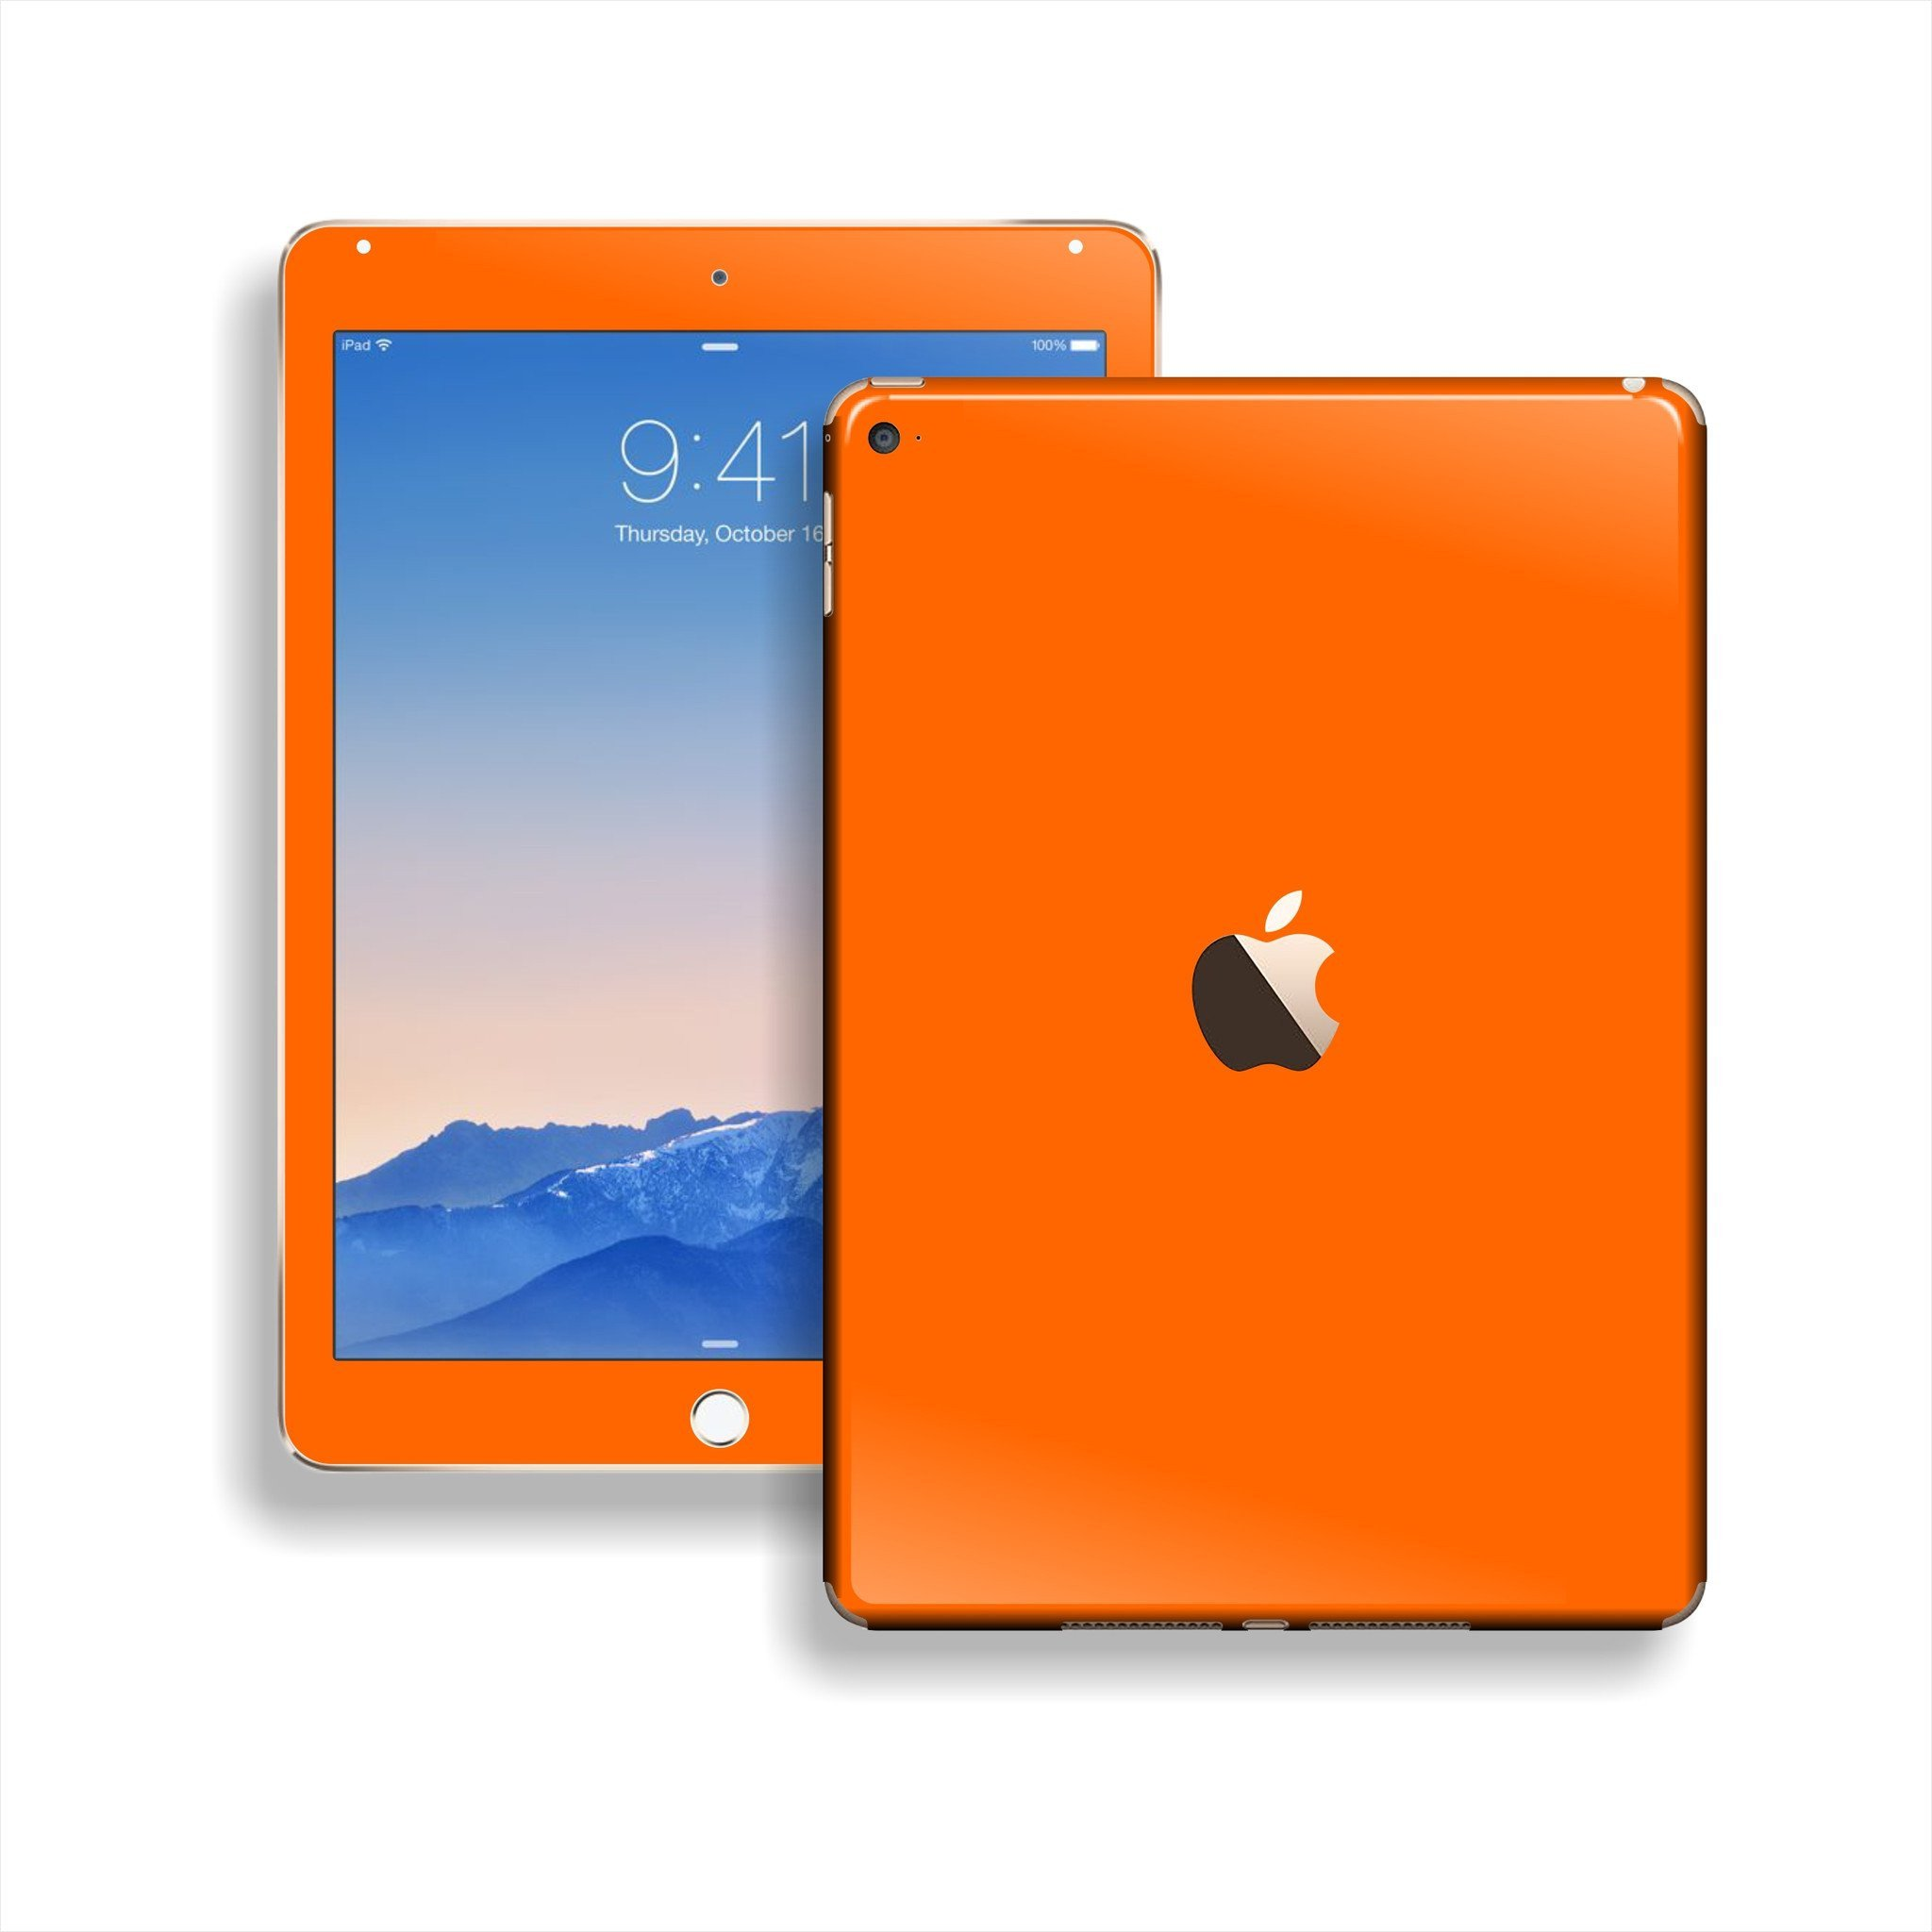 iPad Air 2 Orange Glossy Skin Wrap Sticker Decal Cover Protector by EasySkinz